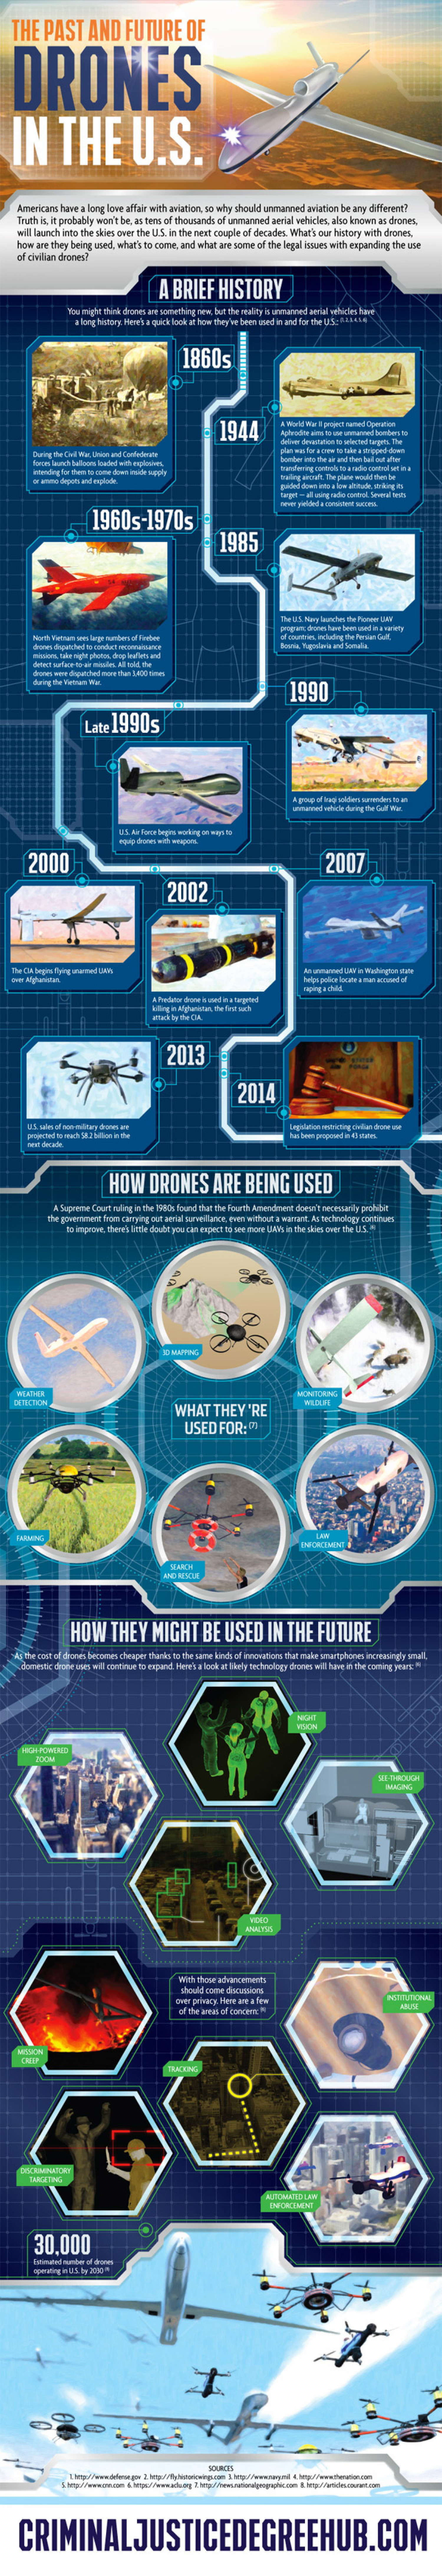 The Past and Future of Drones in the U.S. Infographic